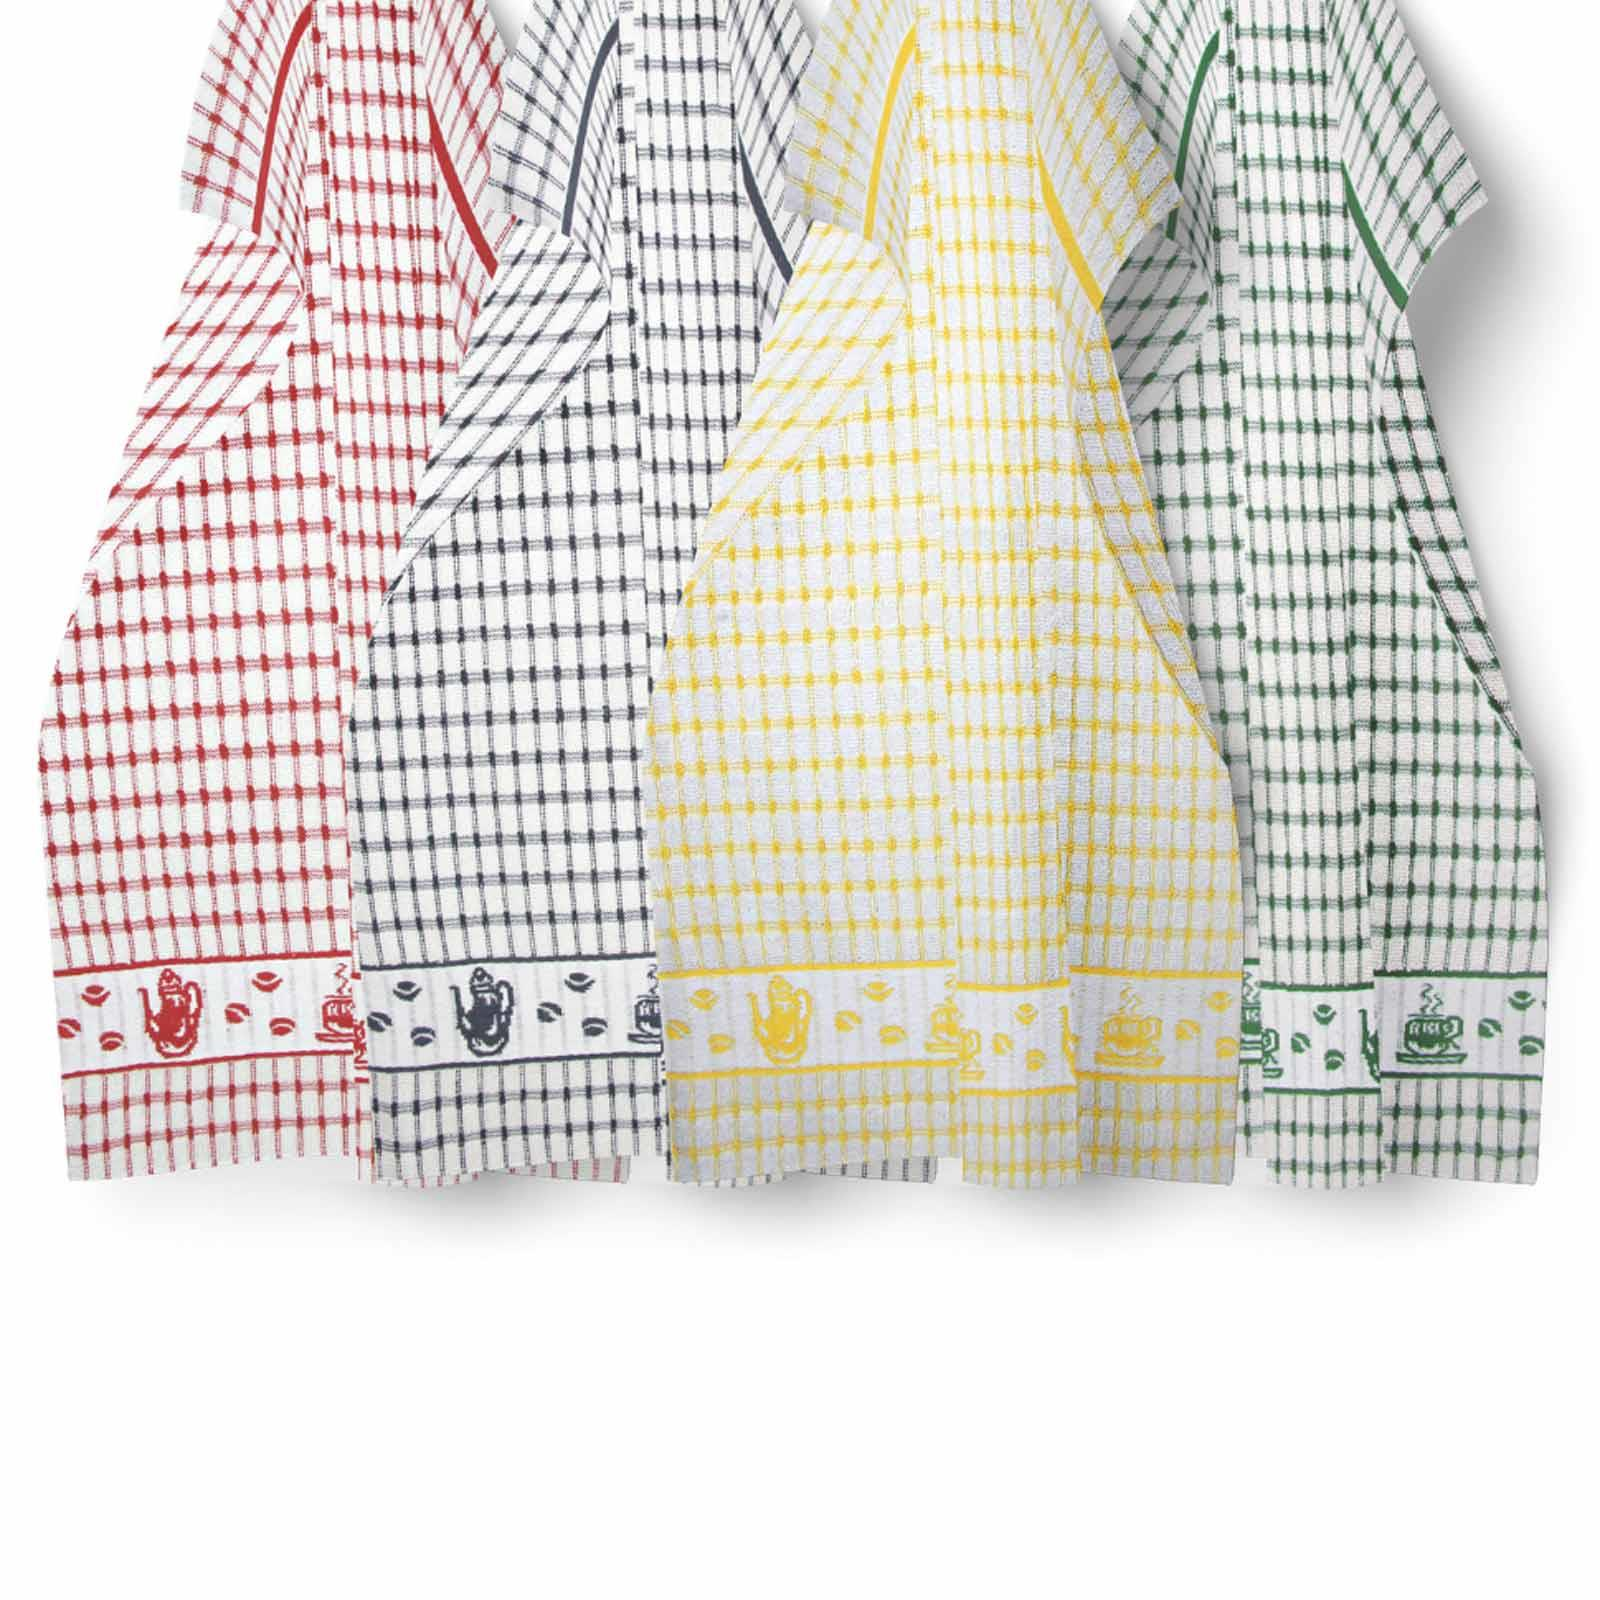 Packs-of-2-4-6-12-Tea-Towels-100-Cotton-Terry-Kitchen-Dish-Drying-Towel-Sets thumbnail 81